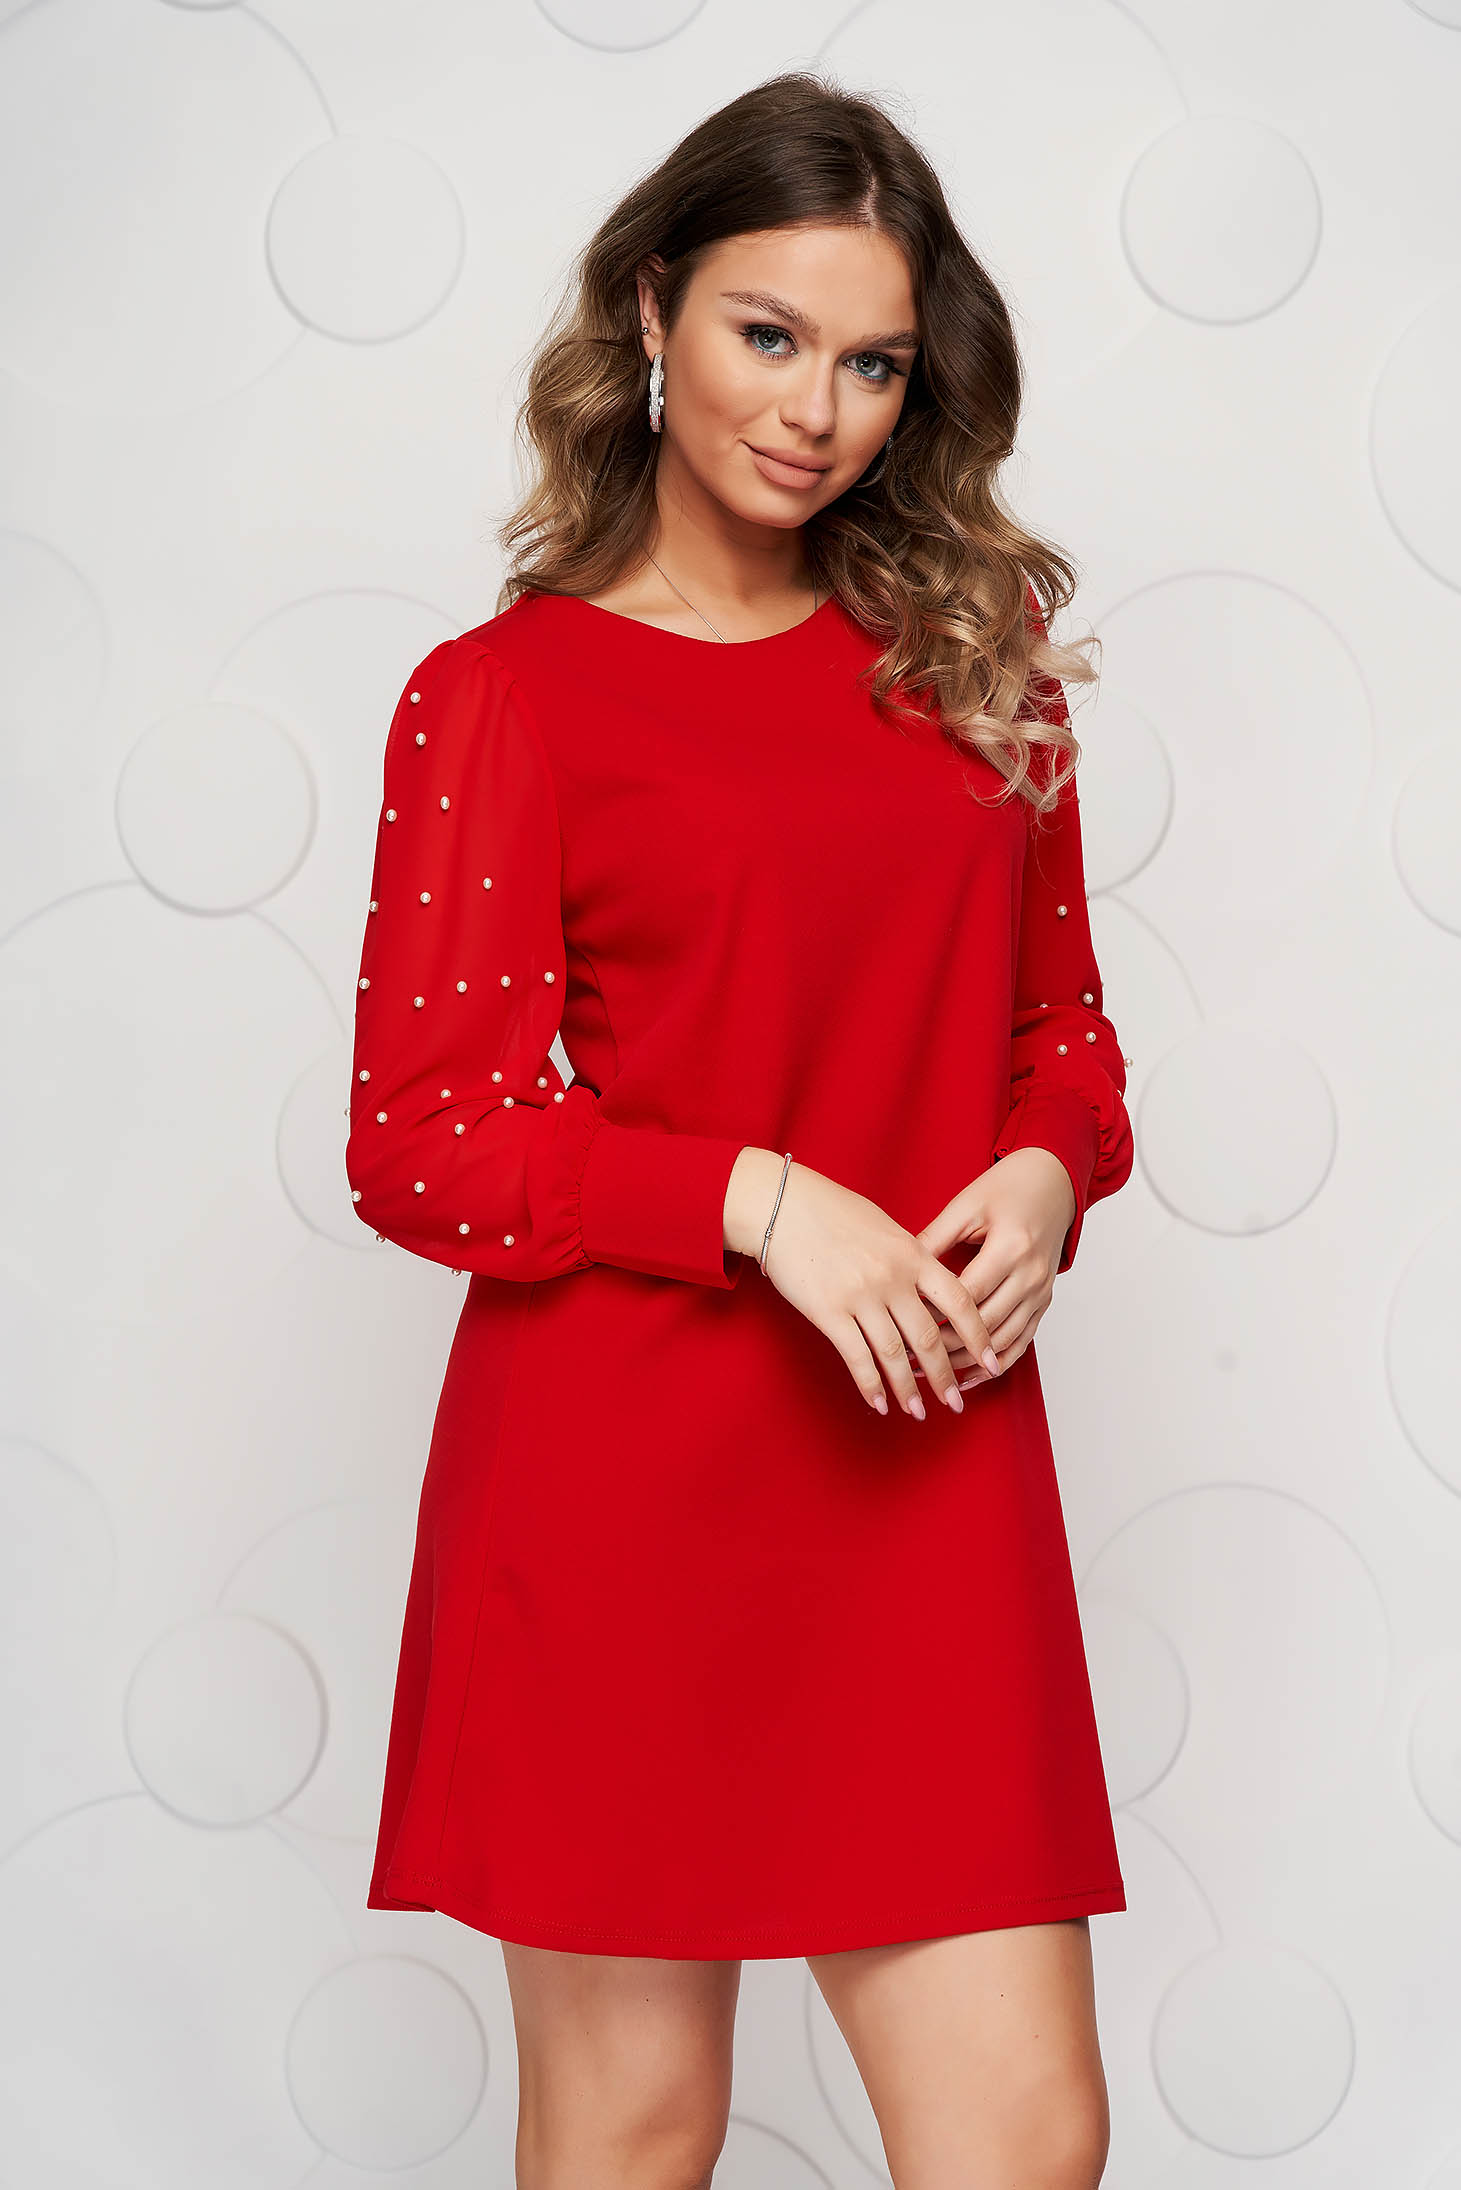 Red dress occasional short cut flared with veil sleeves with pearls